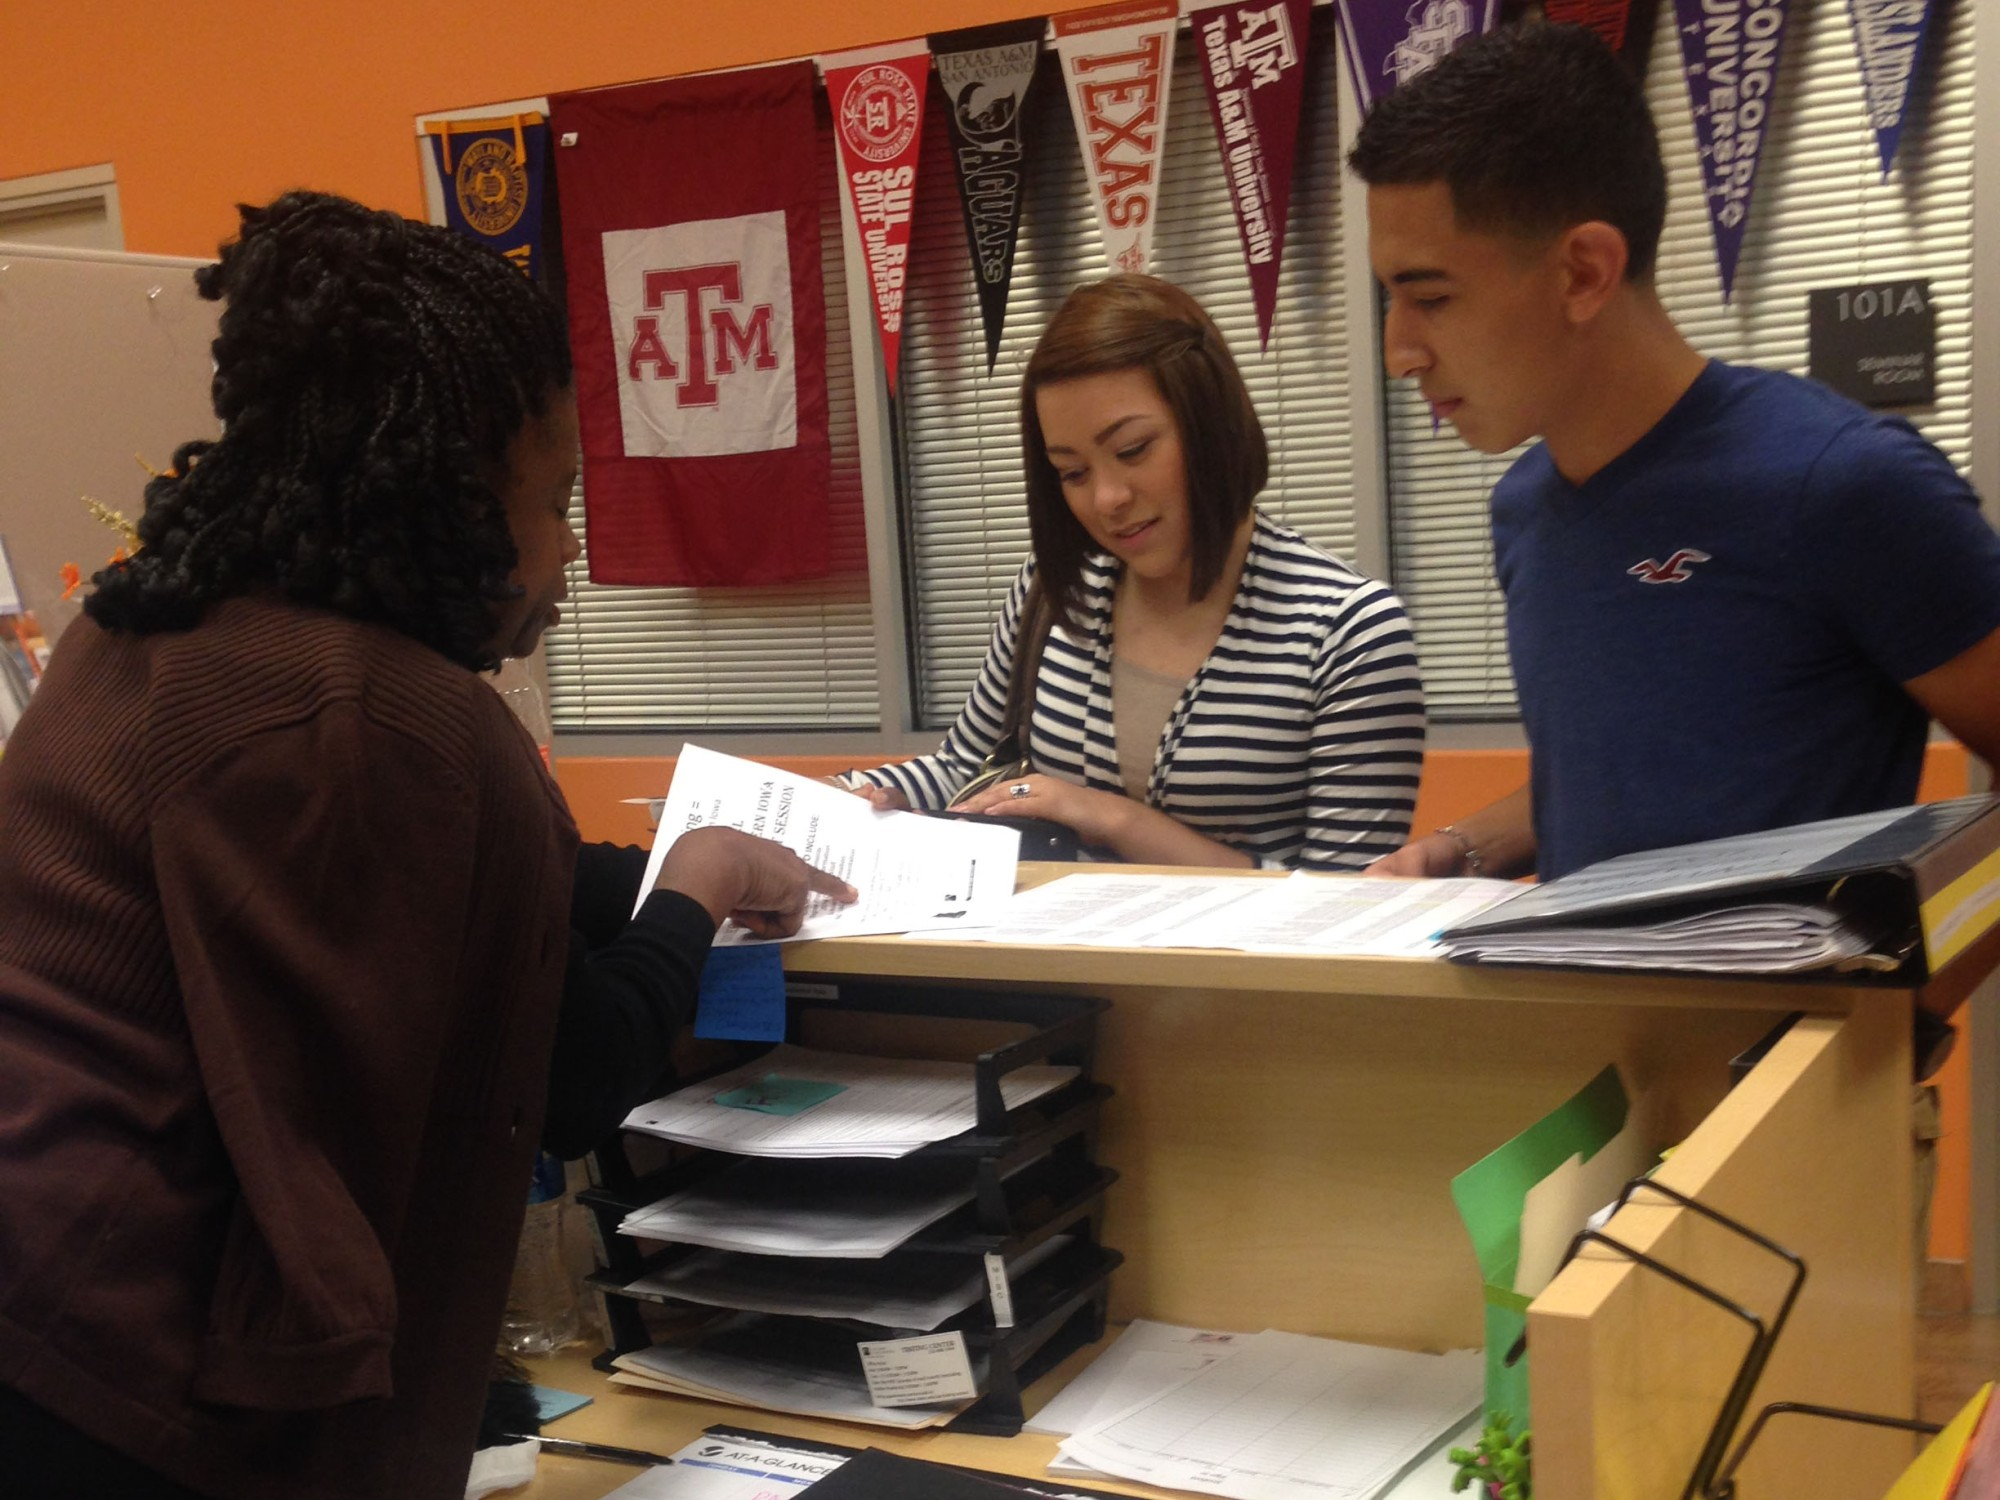 Palo Alto Students getting information from The Center for Academic Transitions.